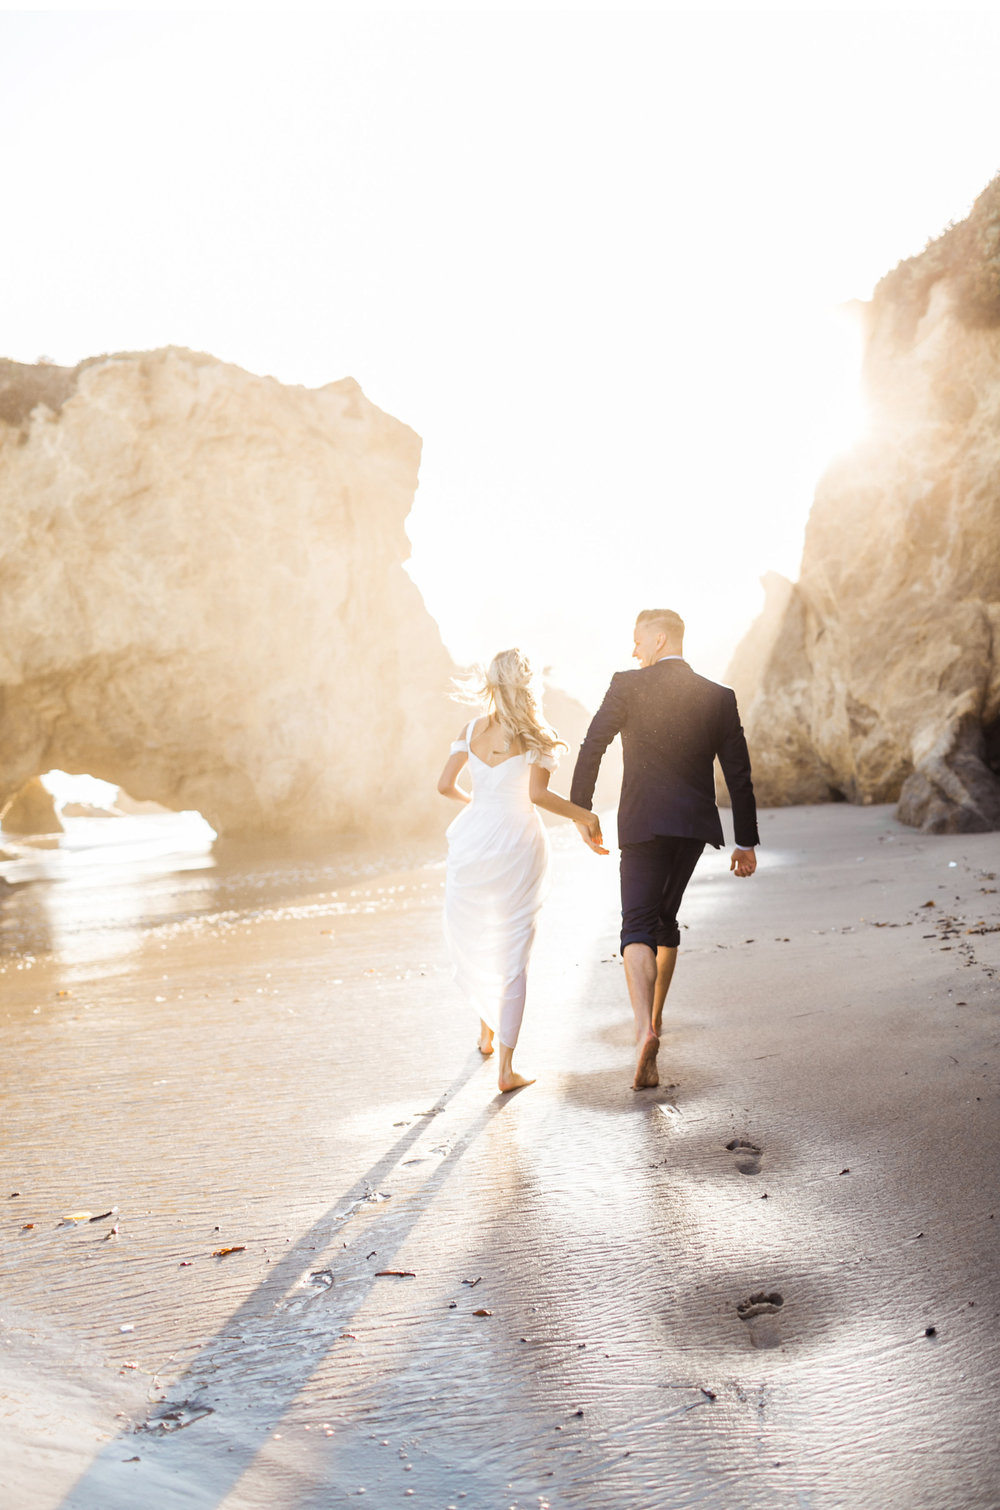 Style-Me-Pretty-Malibu-Wedding-Natalie-Schutt-Photography_08.jpg